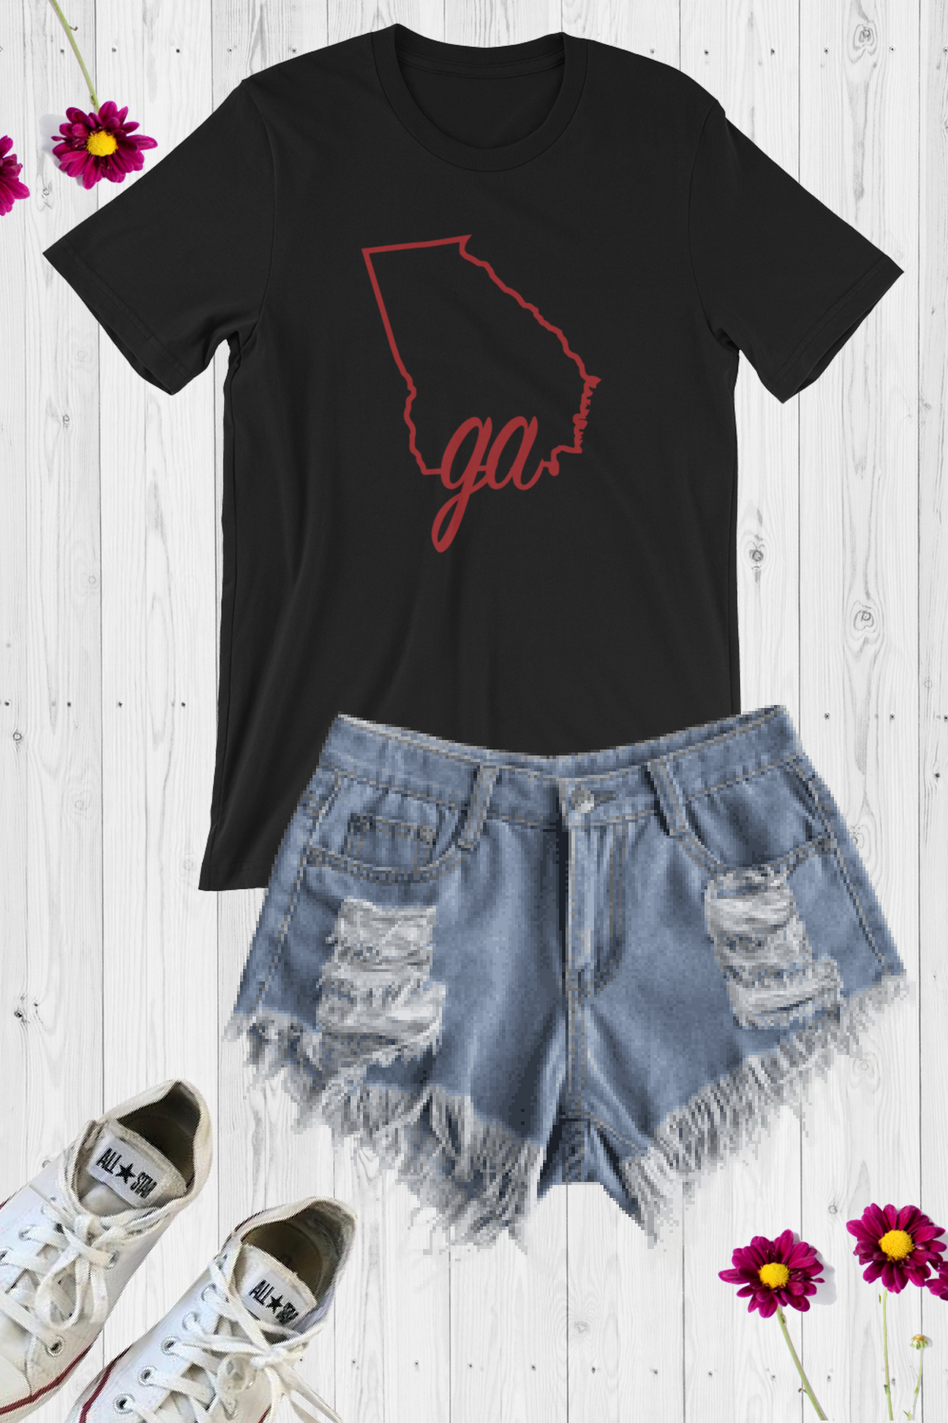 GA State Line Graphic Tee - Black